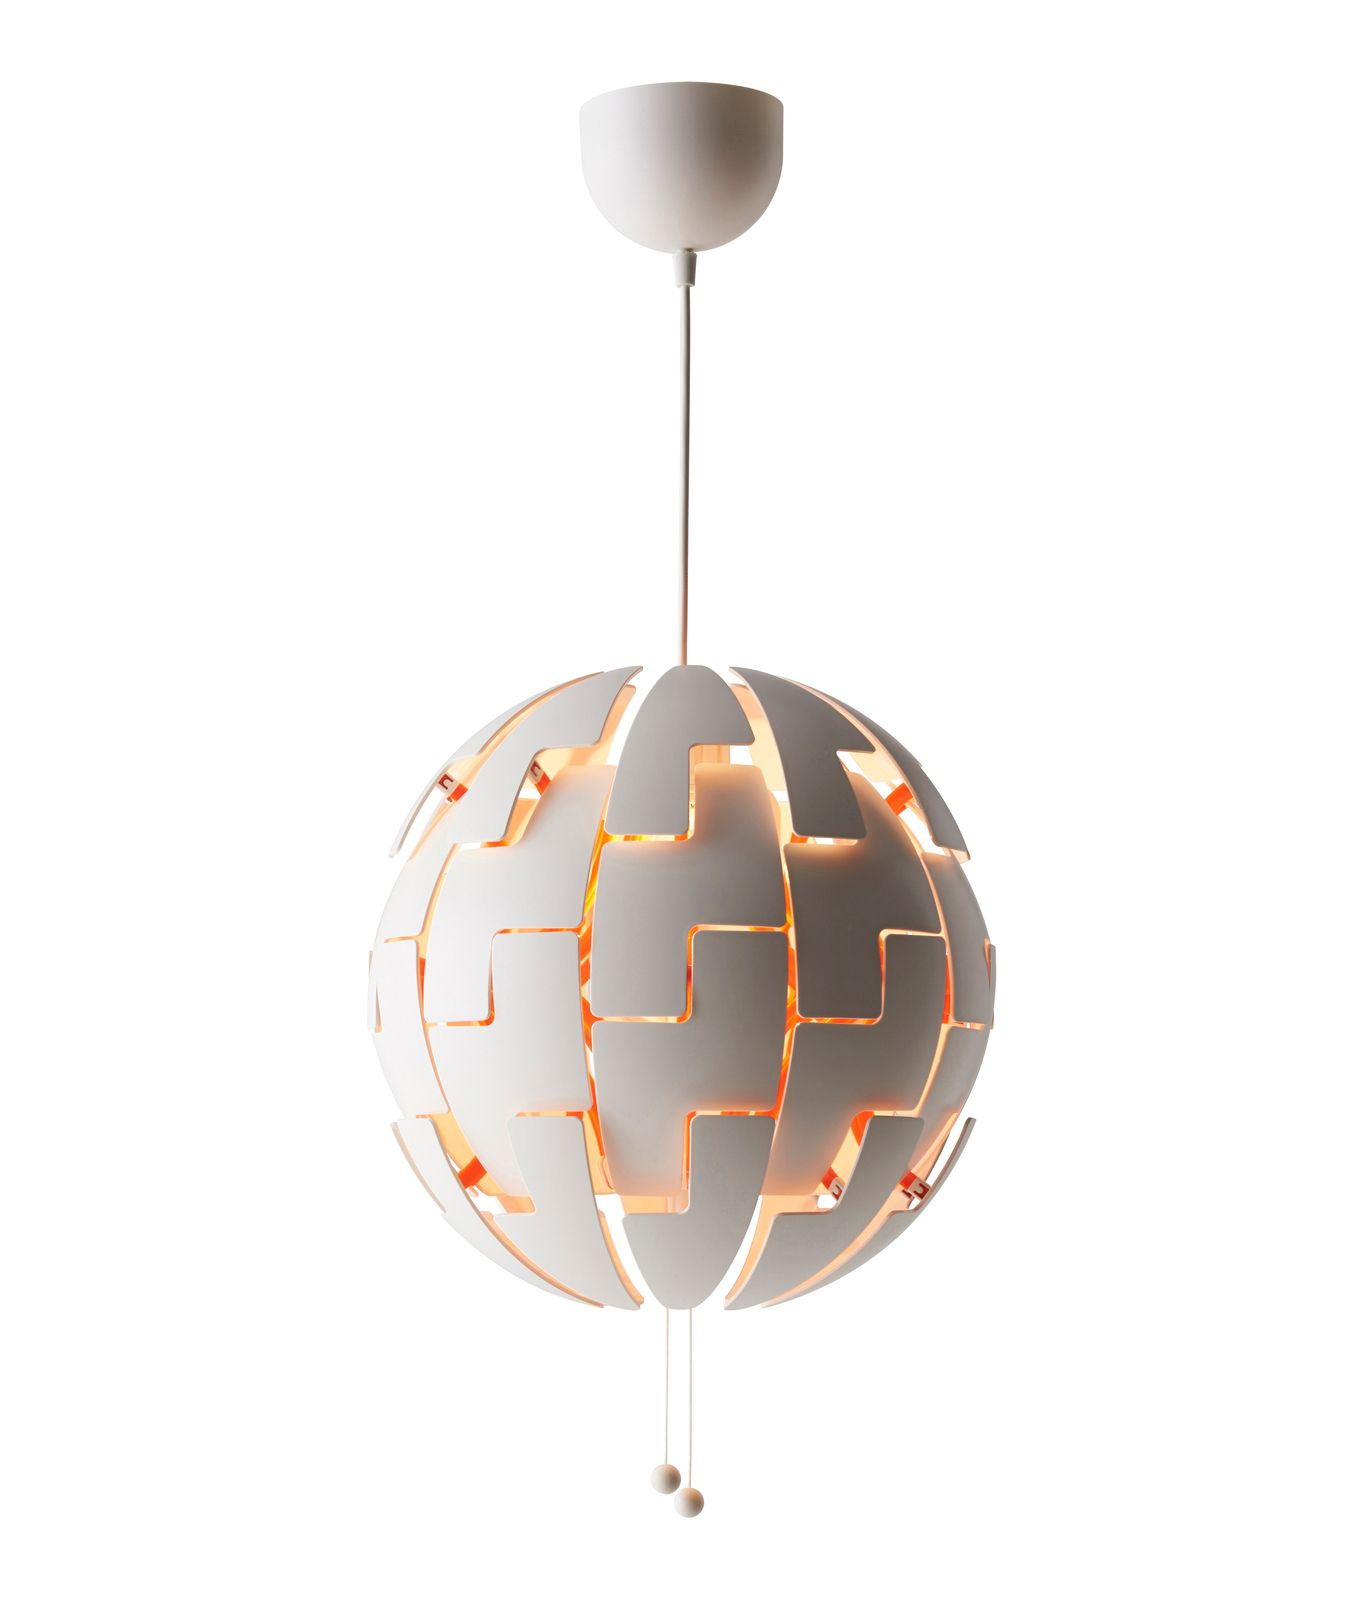 A charming touch of star Wars - IKEA PS 2014 pendant l& by David Wahl  sc 1 st  Pinterest & A charming touch of star Wars - IKEA PS 2014 pendant lamp by David ... azcodes.com